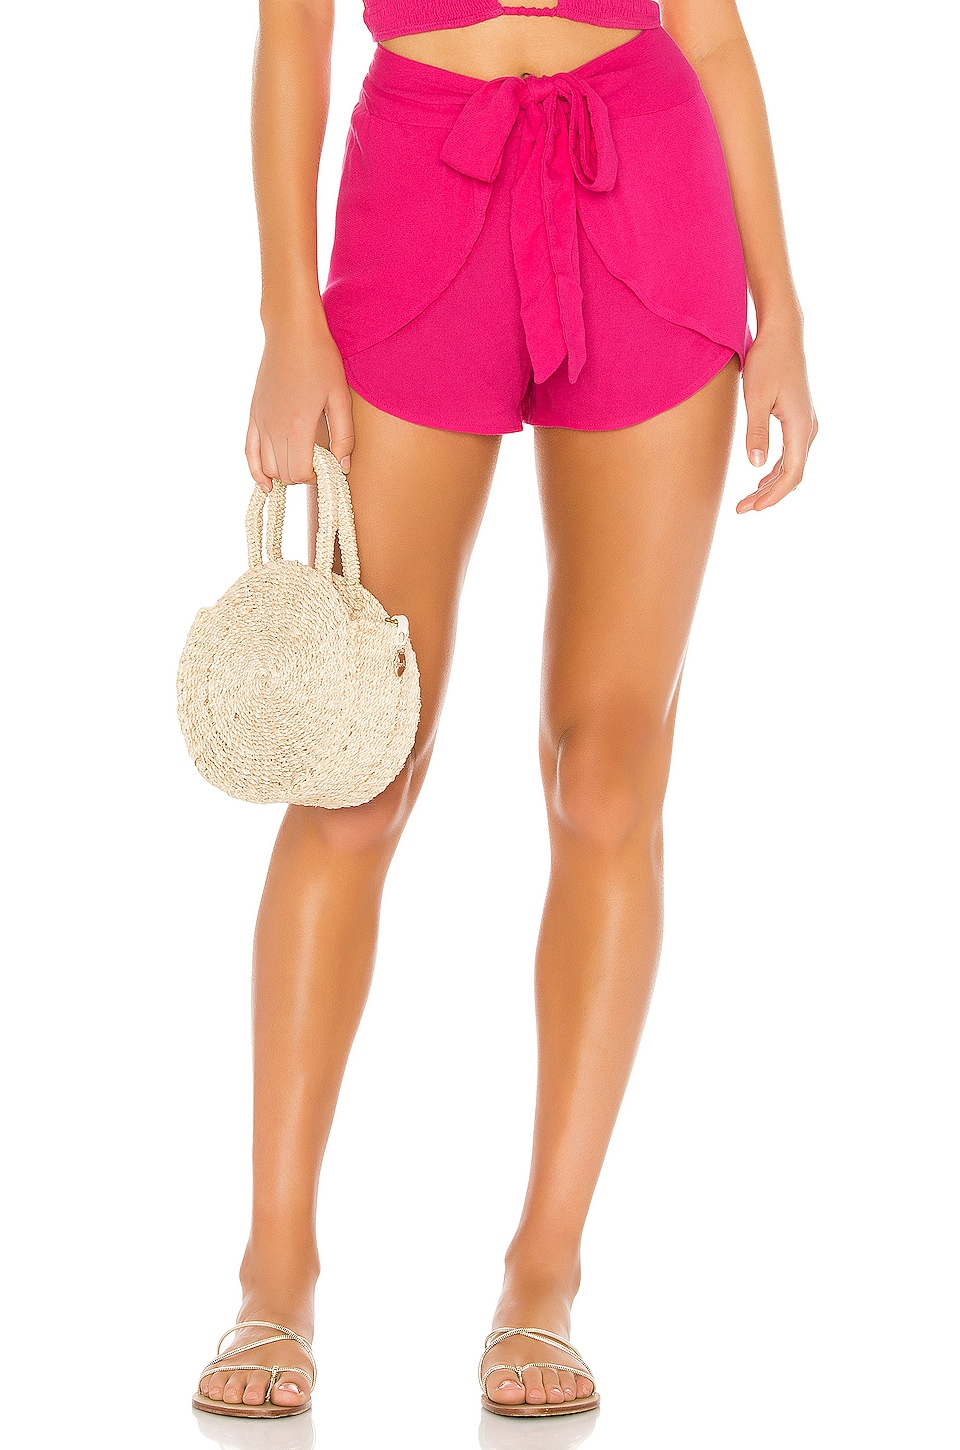 Indah X REVOLVE Palm Wrap Short in Pink Glo